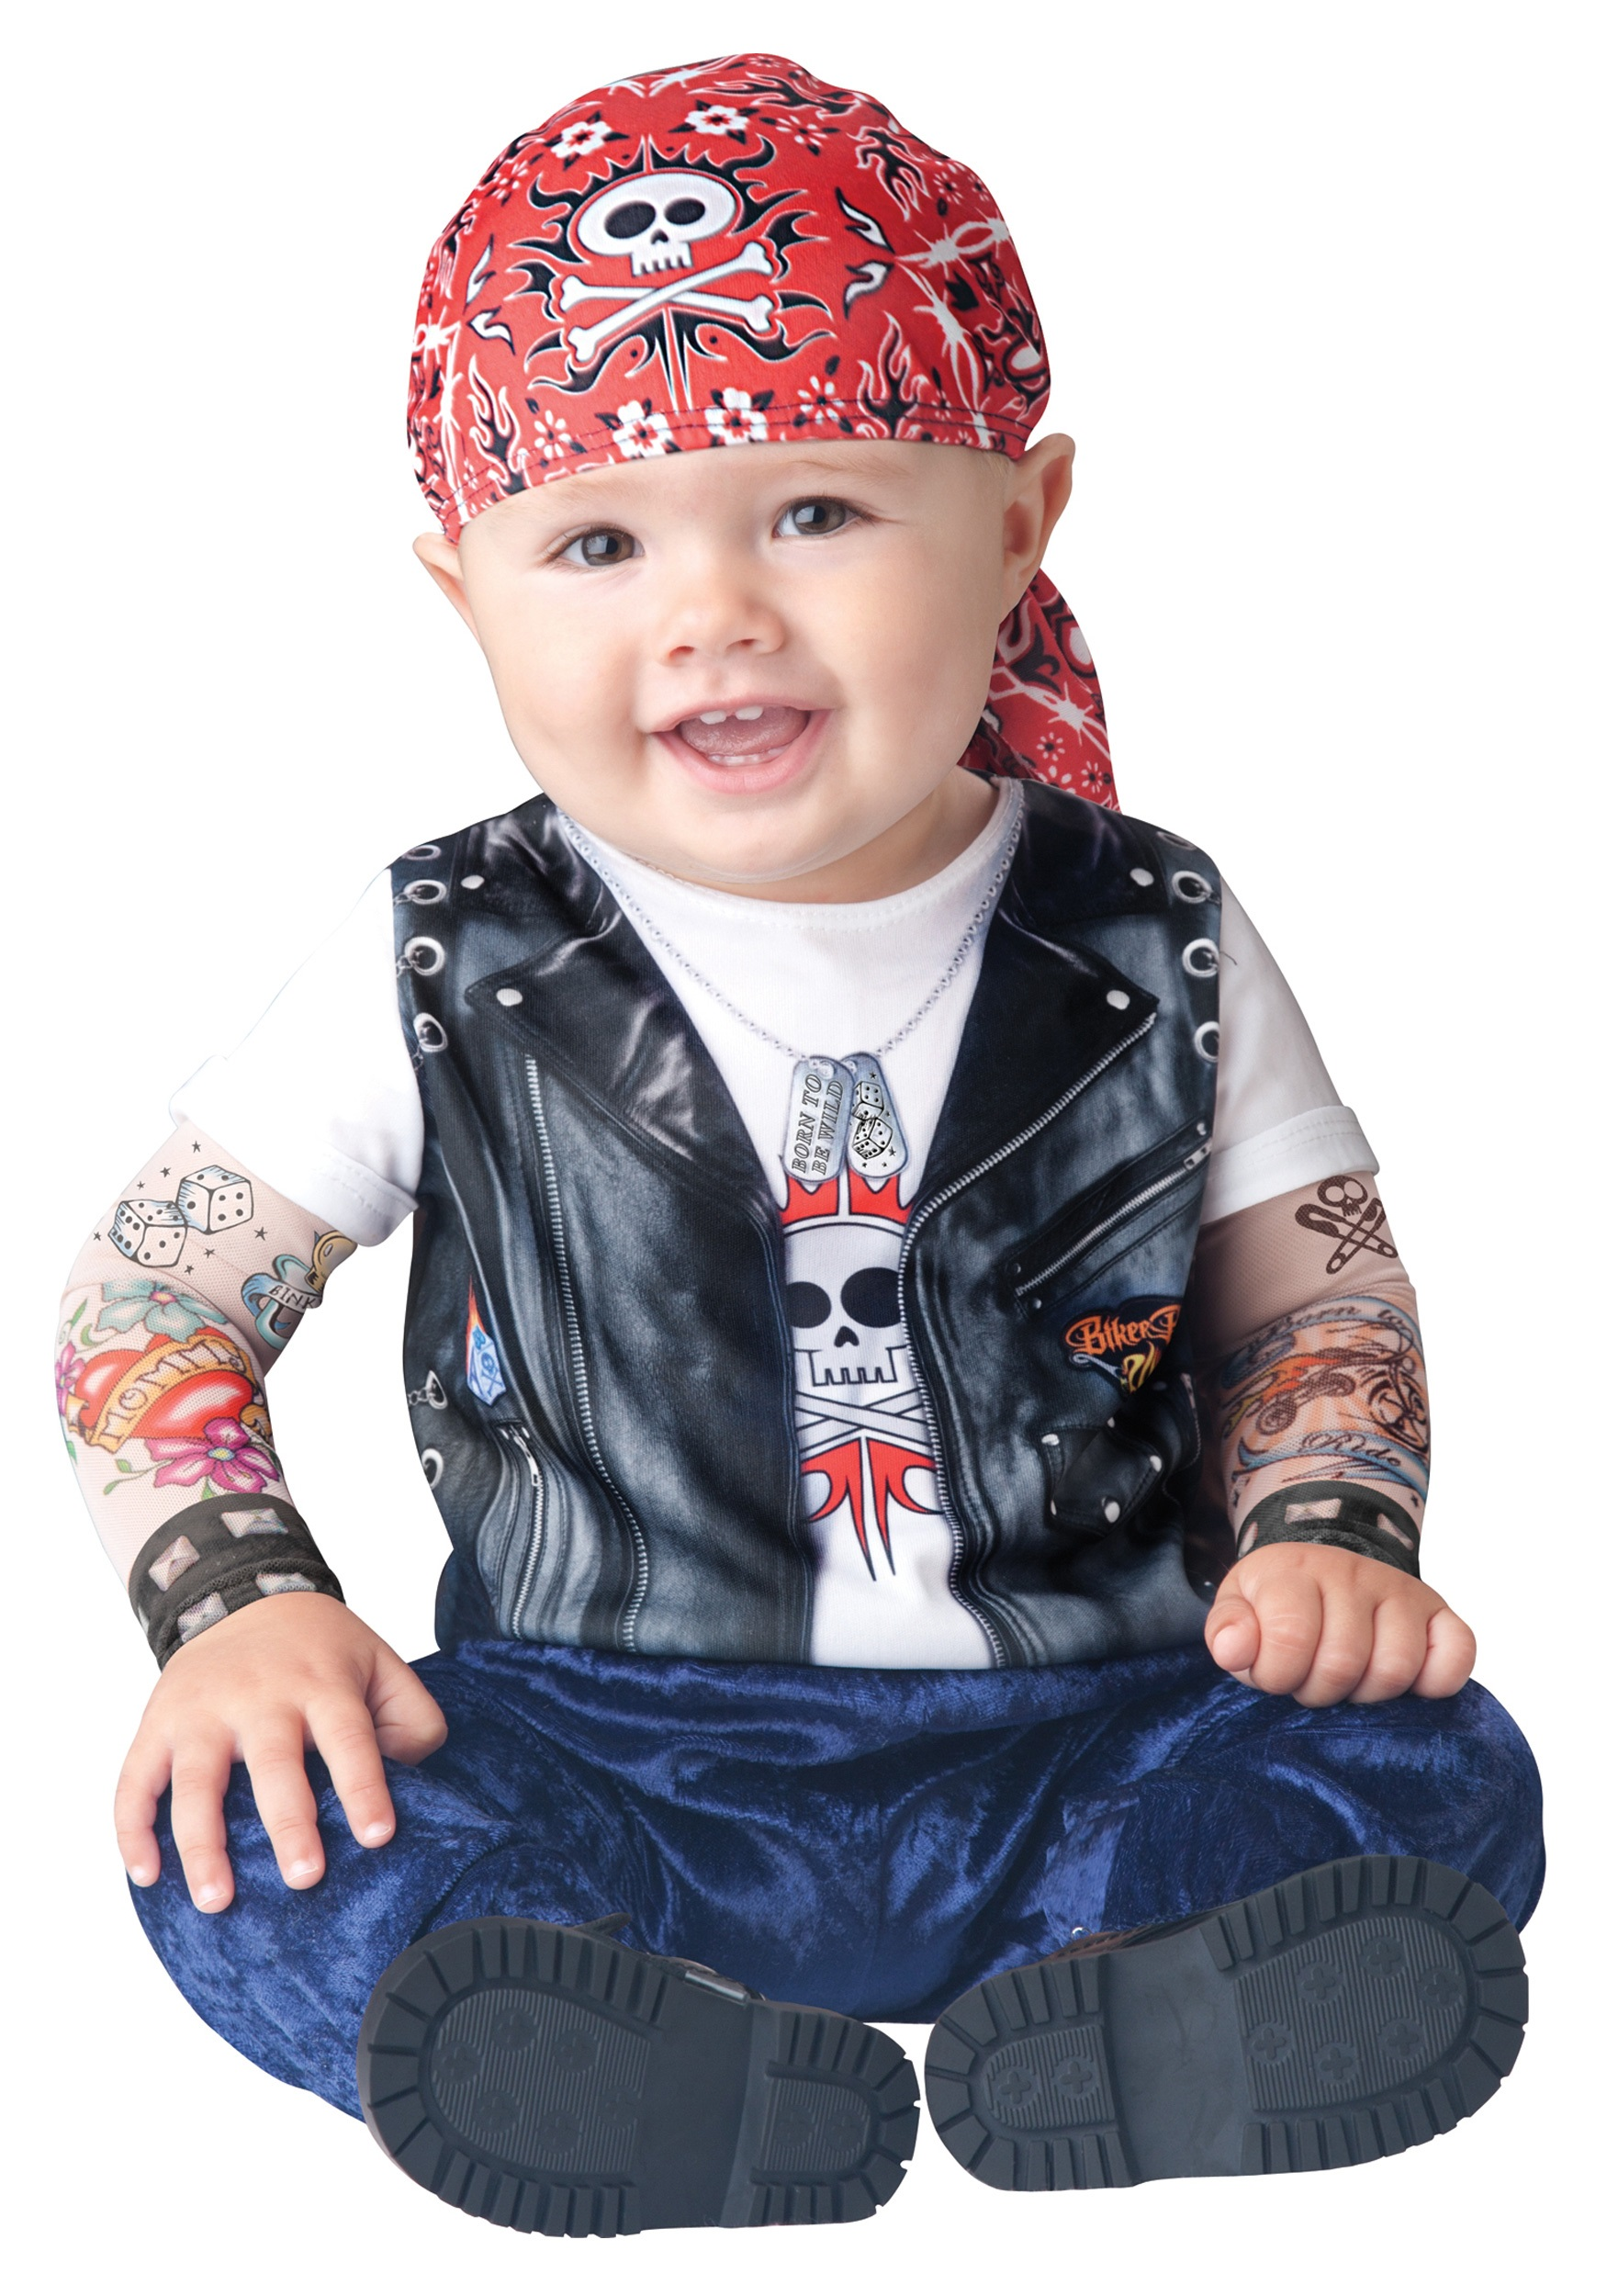 Costumes & Dress Up. Kids' Motorcycle. Showing 40 of results that match your query. Search Product Result. Product - Ride on Toy, 3 Wheel Motorcycle for Kids, Battery Powered Ride On Toy by Hey! Play! – Ride on Toys for Boys and Girls, Toddler - 4 Year Old, Black.